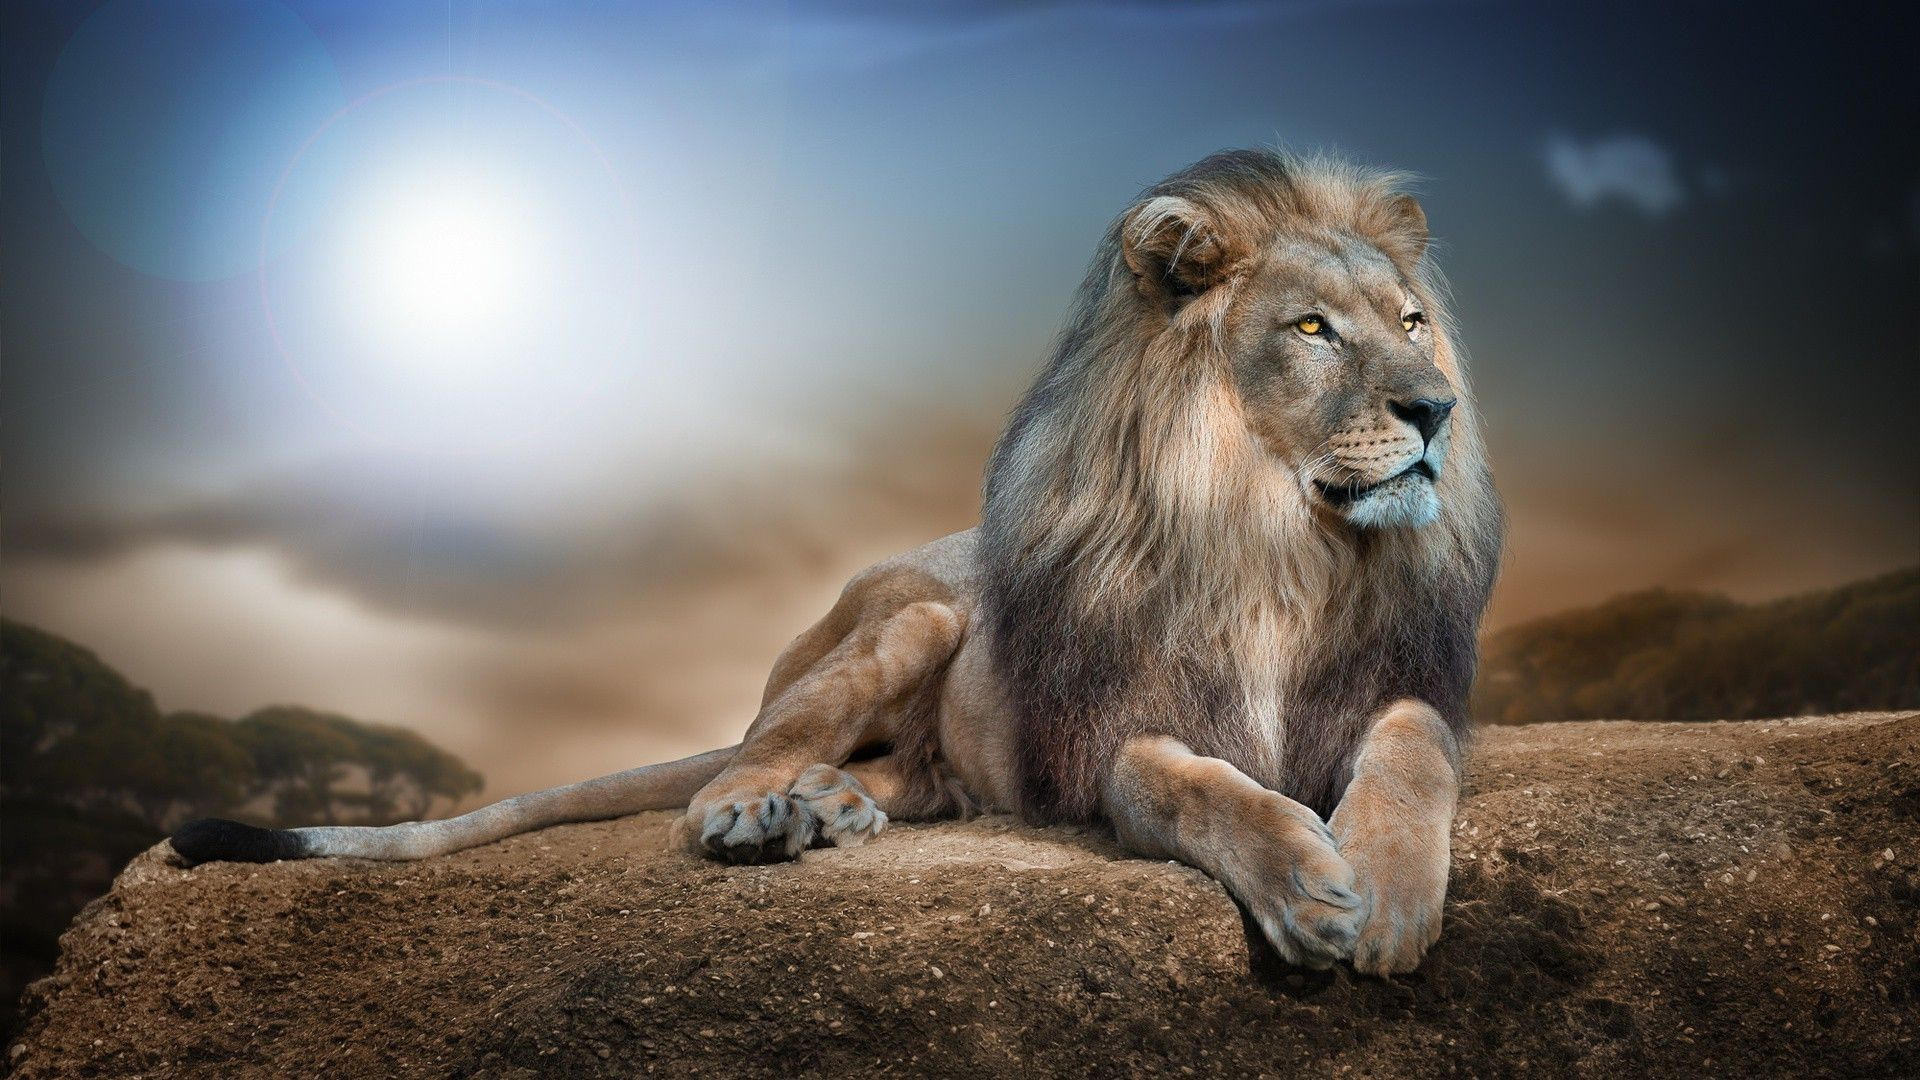 10 Top Wild Animal Wall Paper FULL HD 1080p For PC Desktop